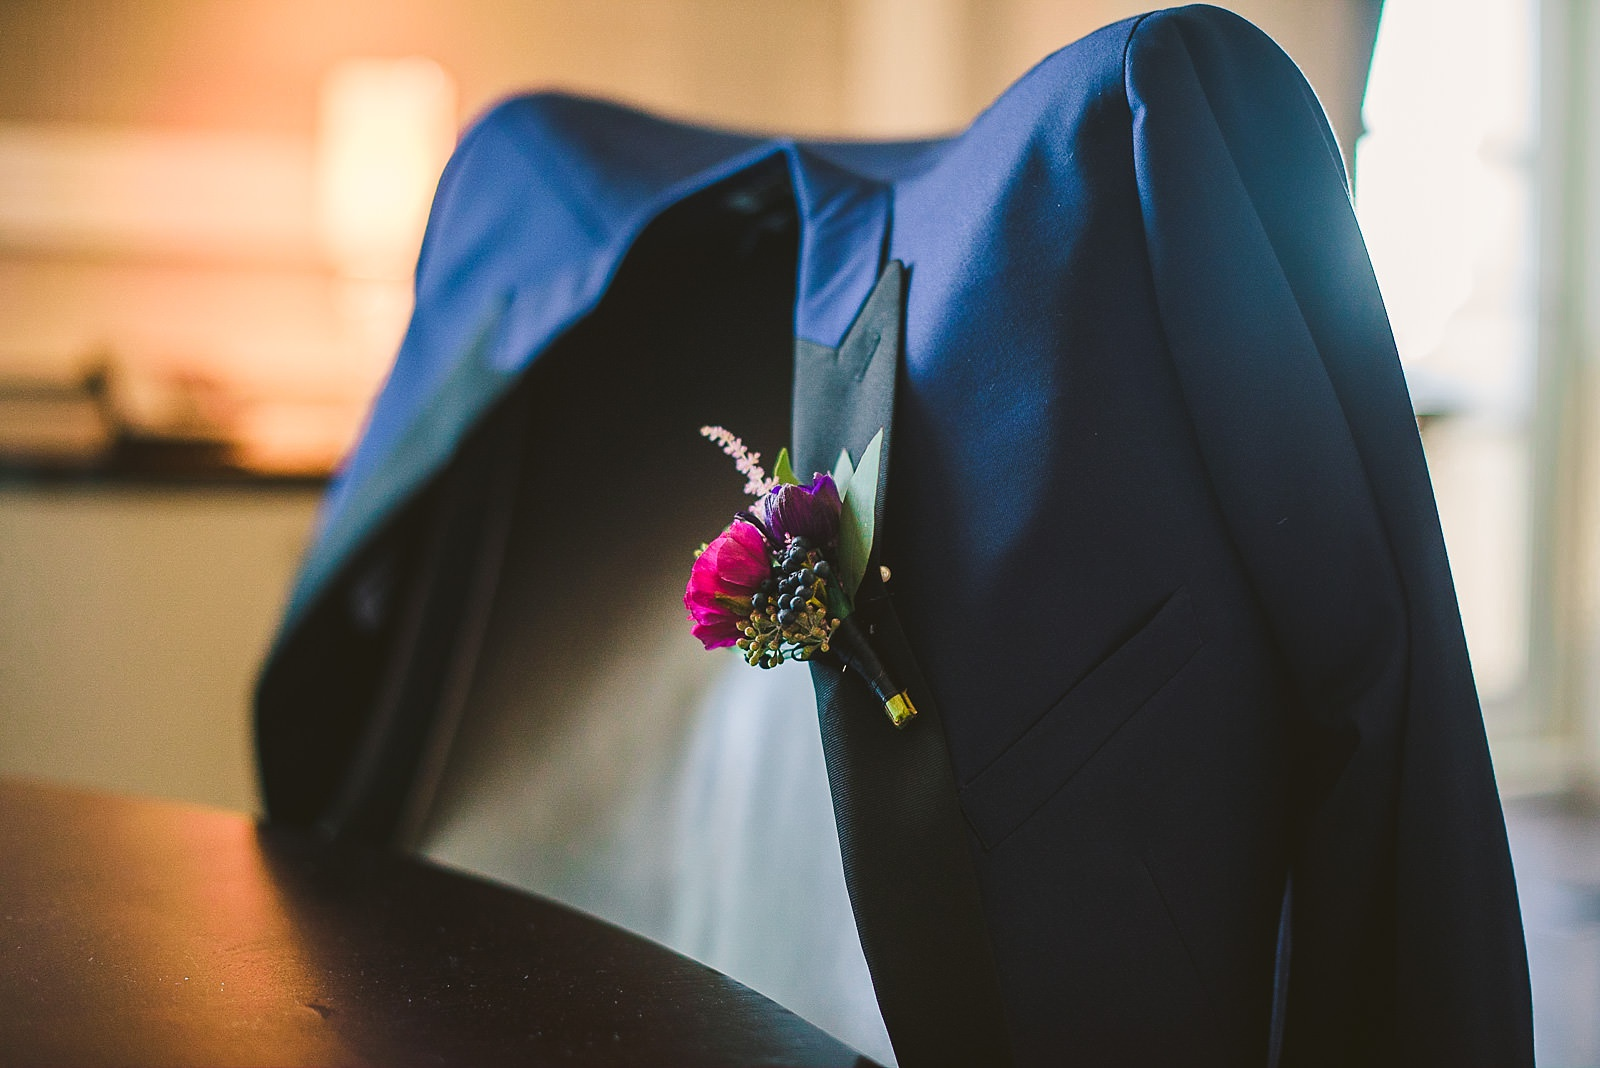 08 grooms jacket - Hilton Chicago Wedding Photographer // Sarah + Aaron